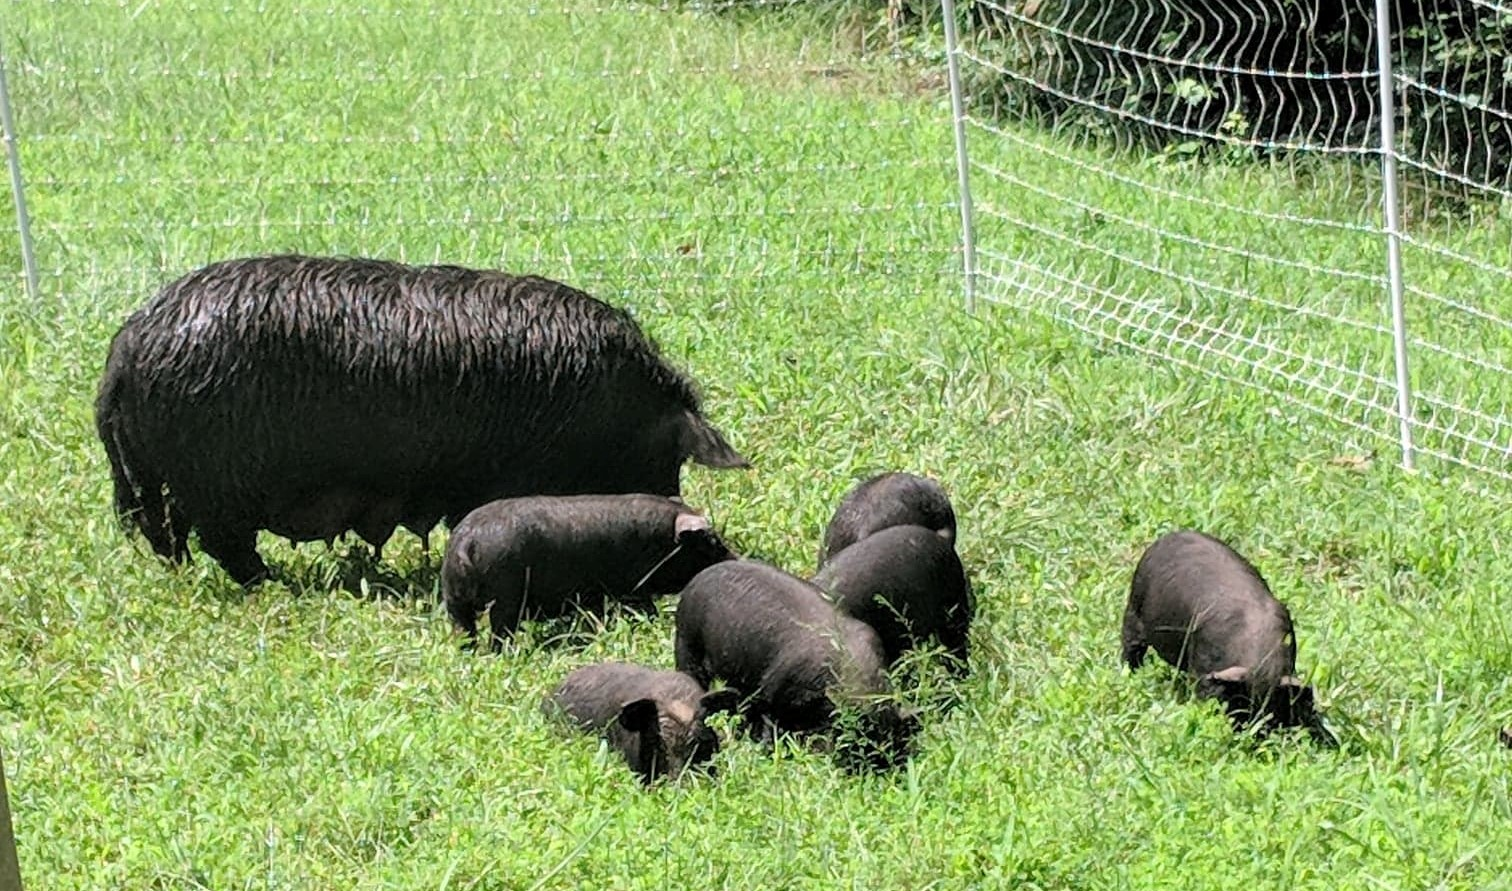 Piglets in the grass